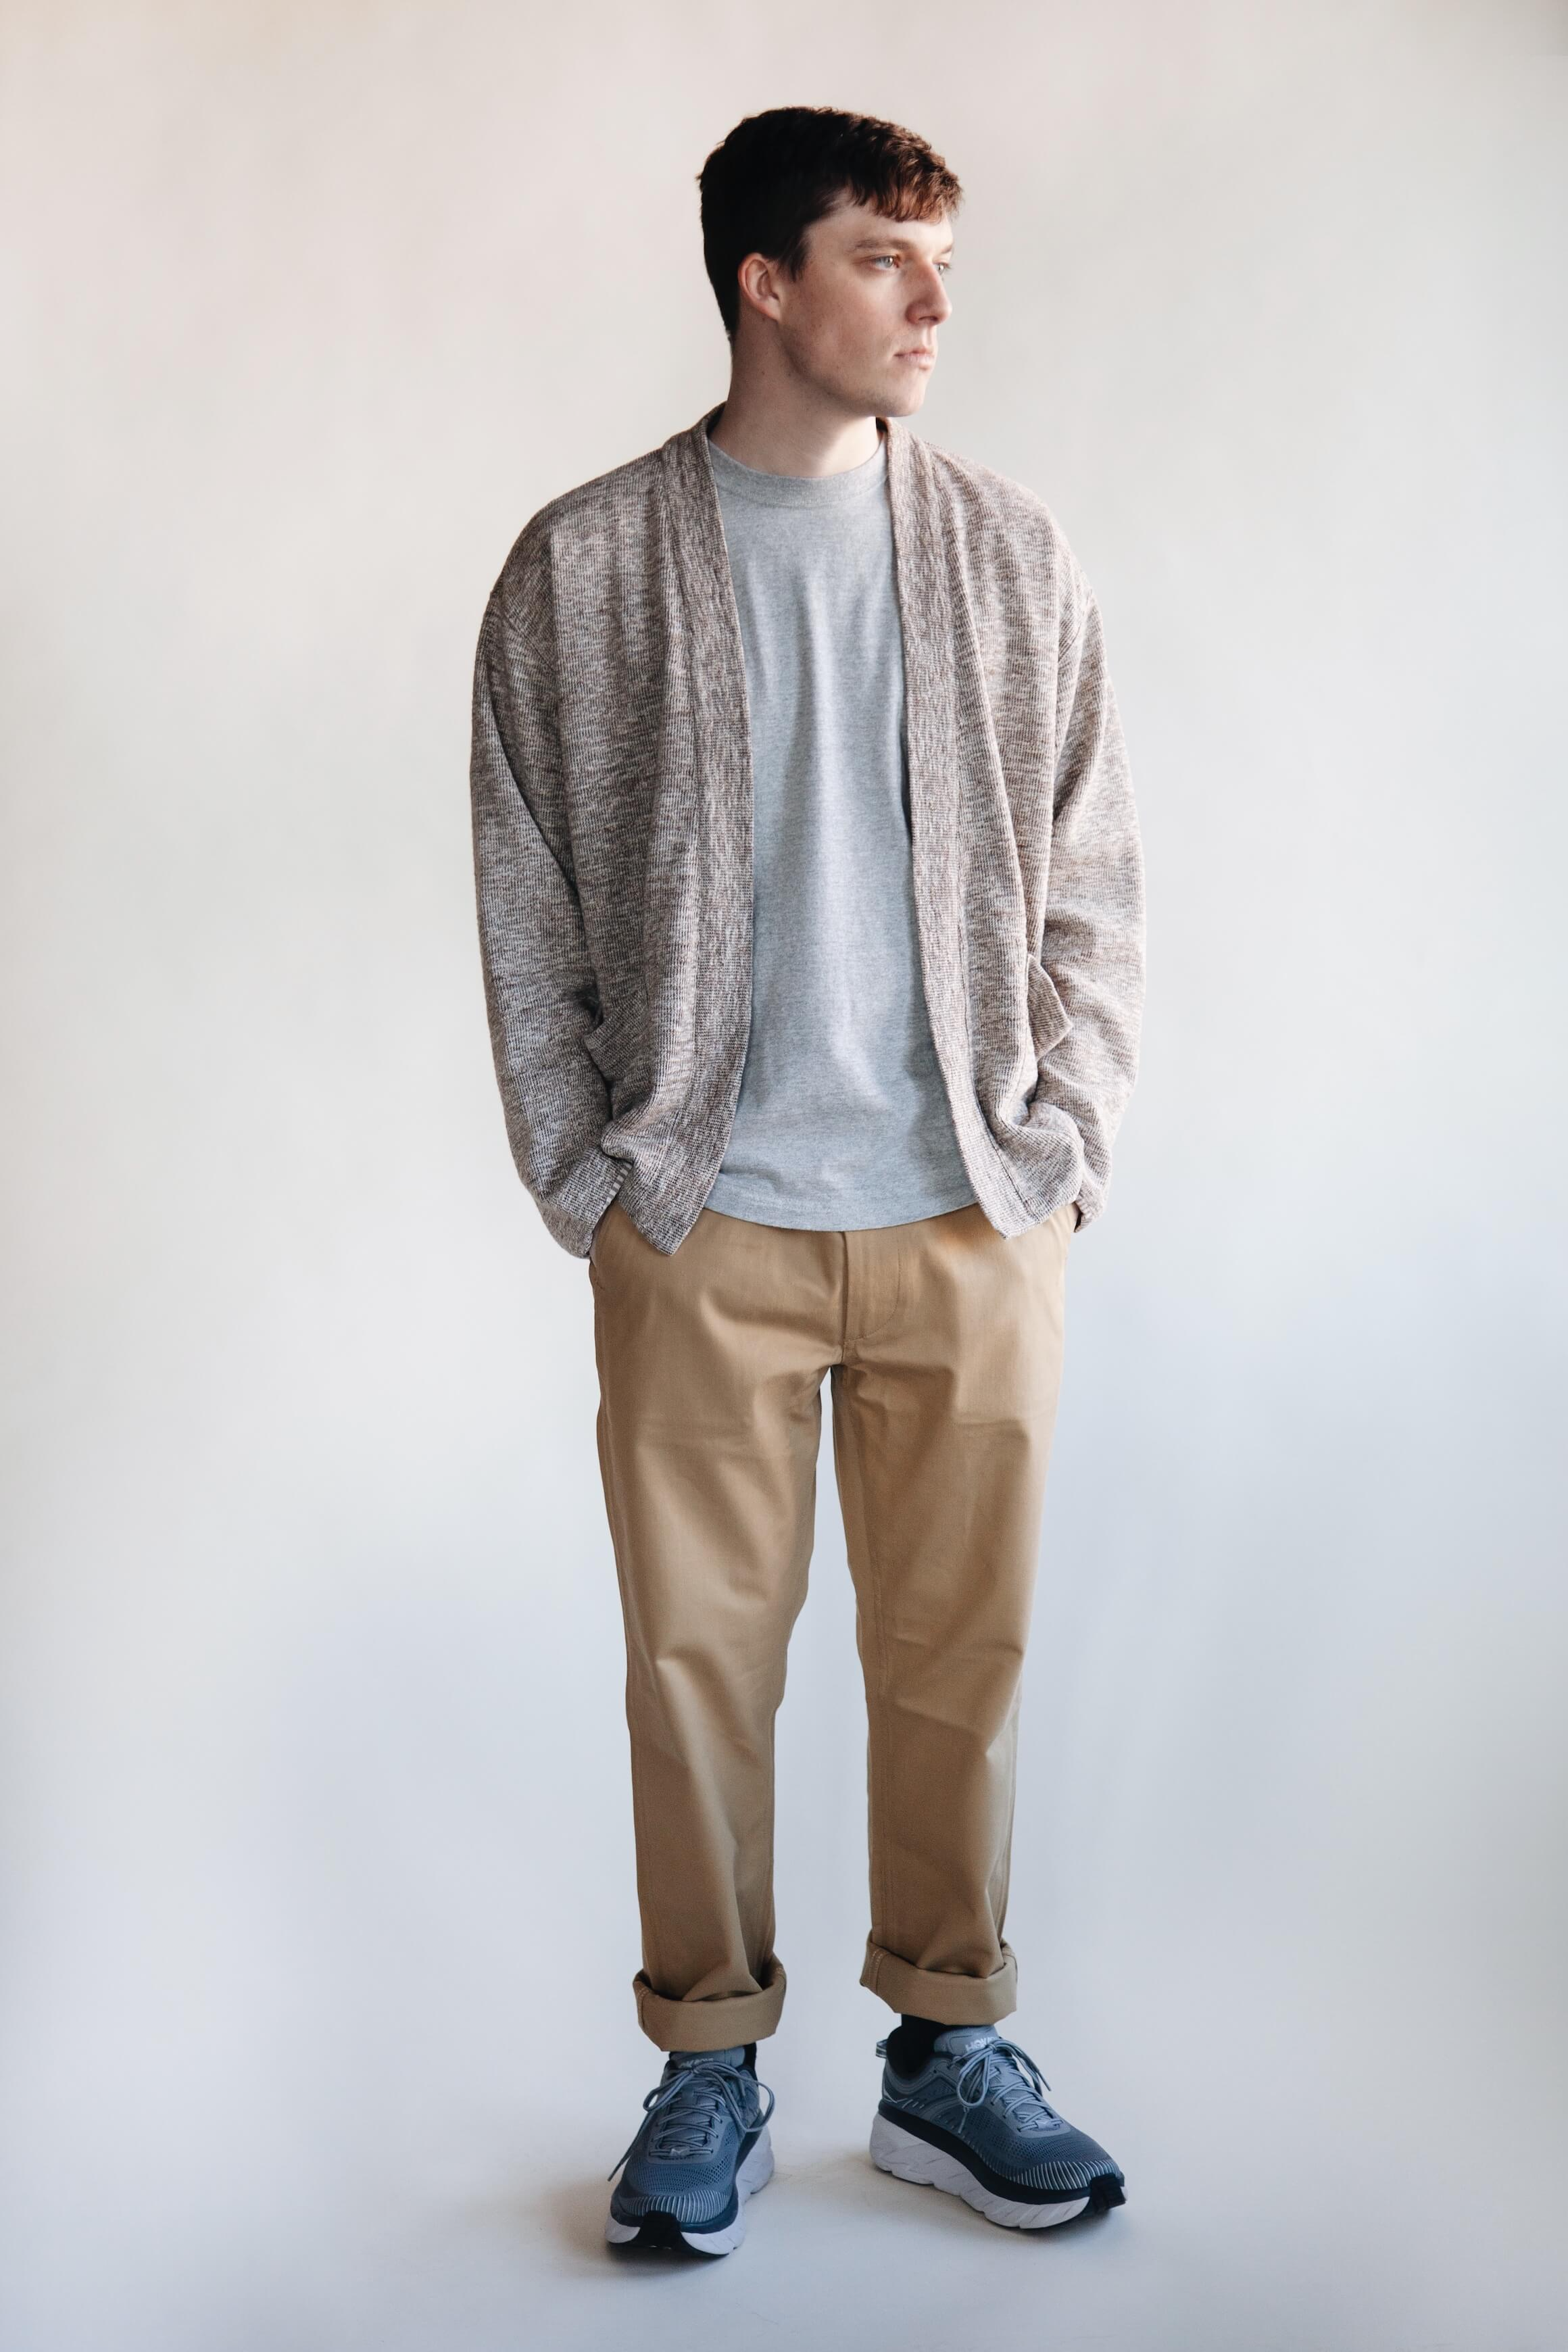 tss lined easy cardigan and crewneck t-shirt, orslow slim fit army trousers and hoka one one bondi 7 shoes on body